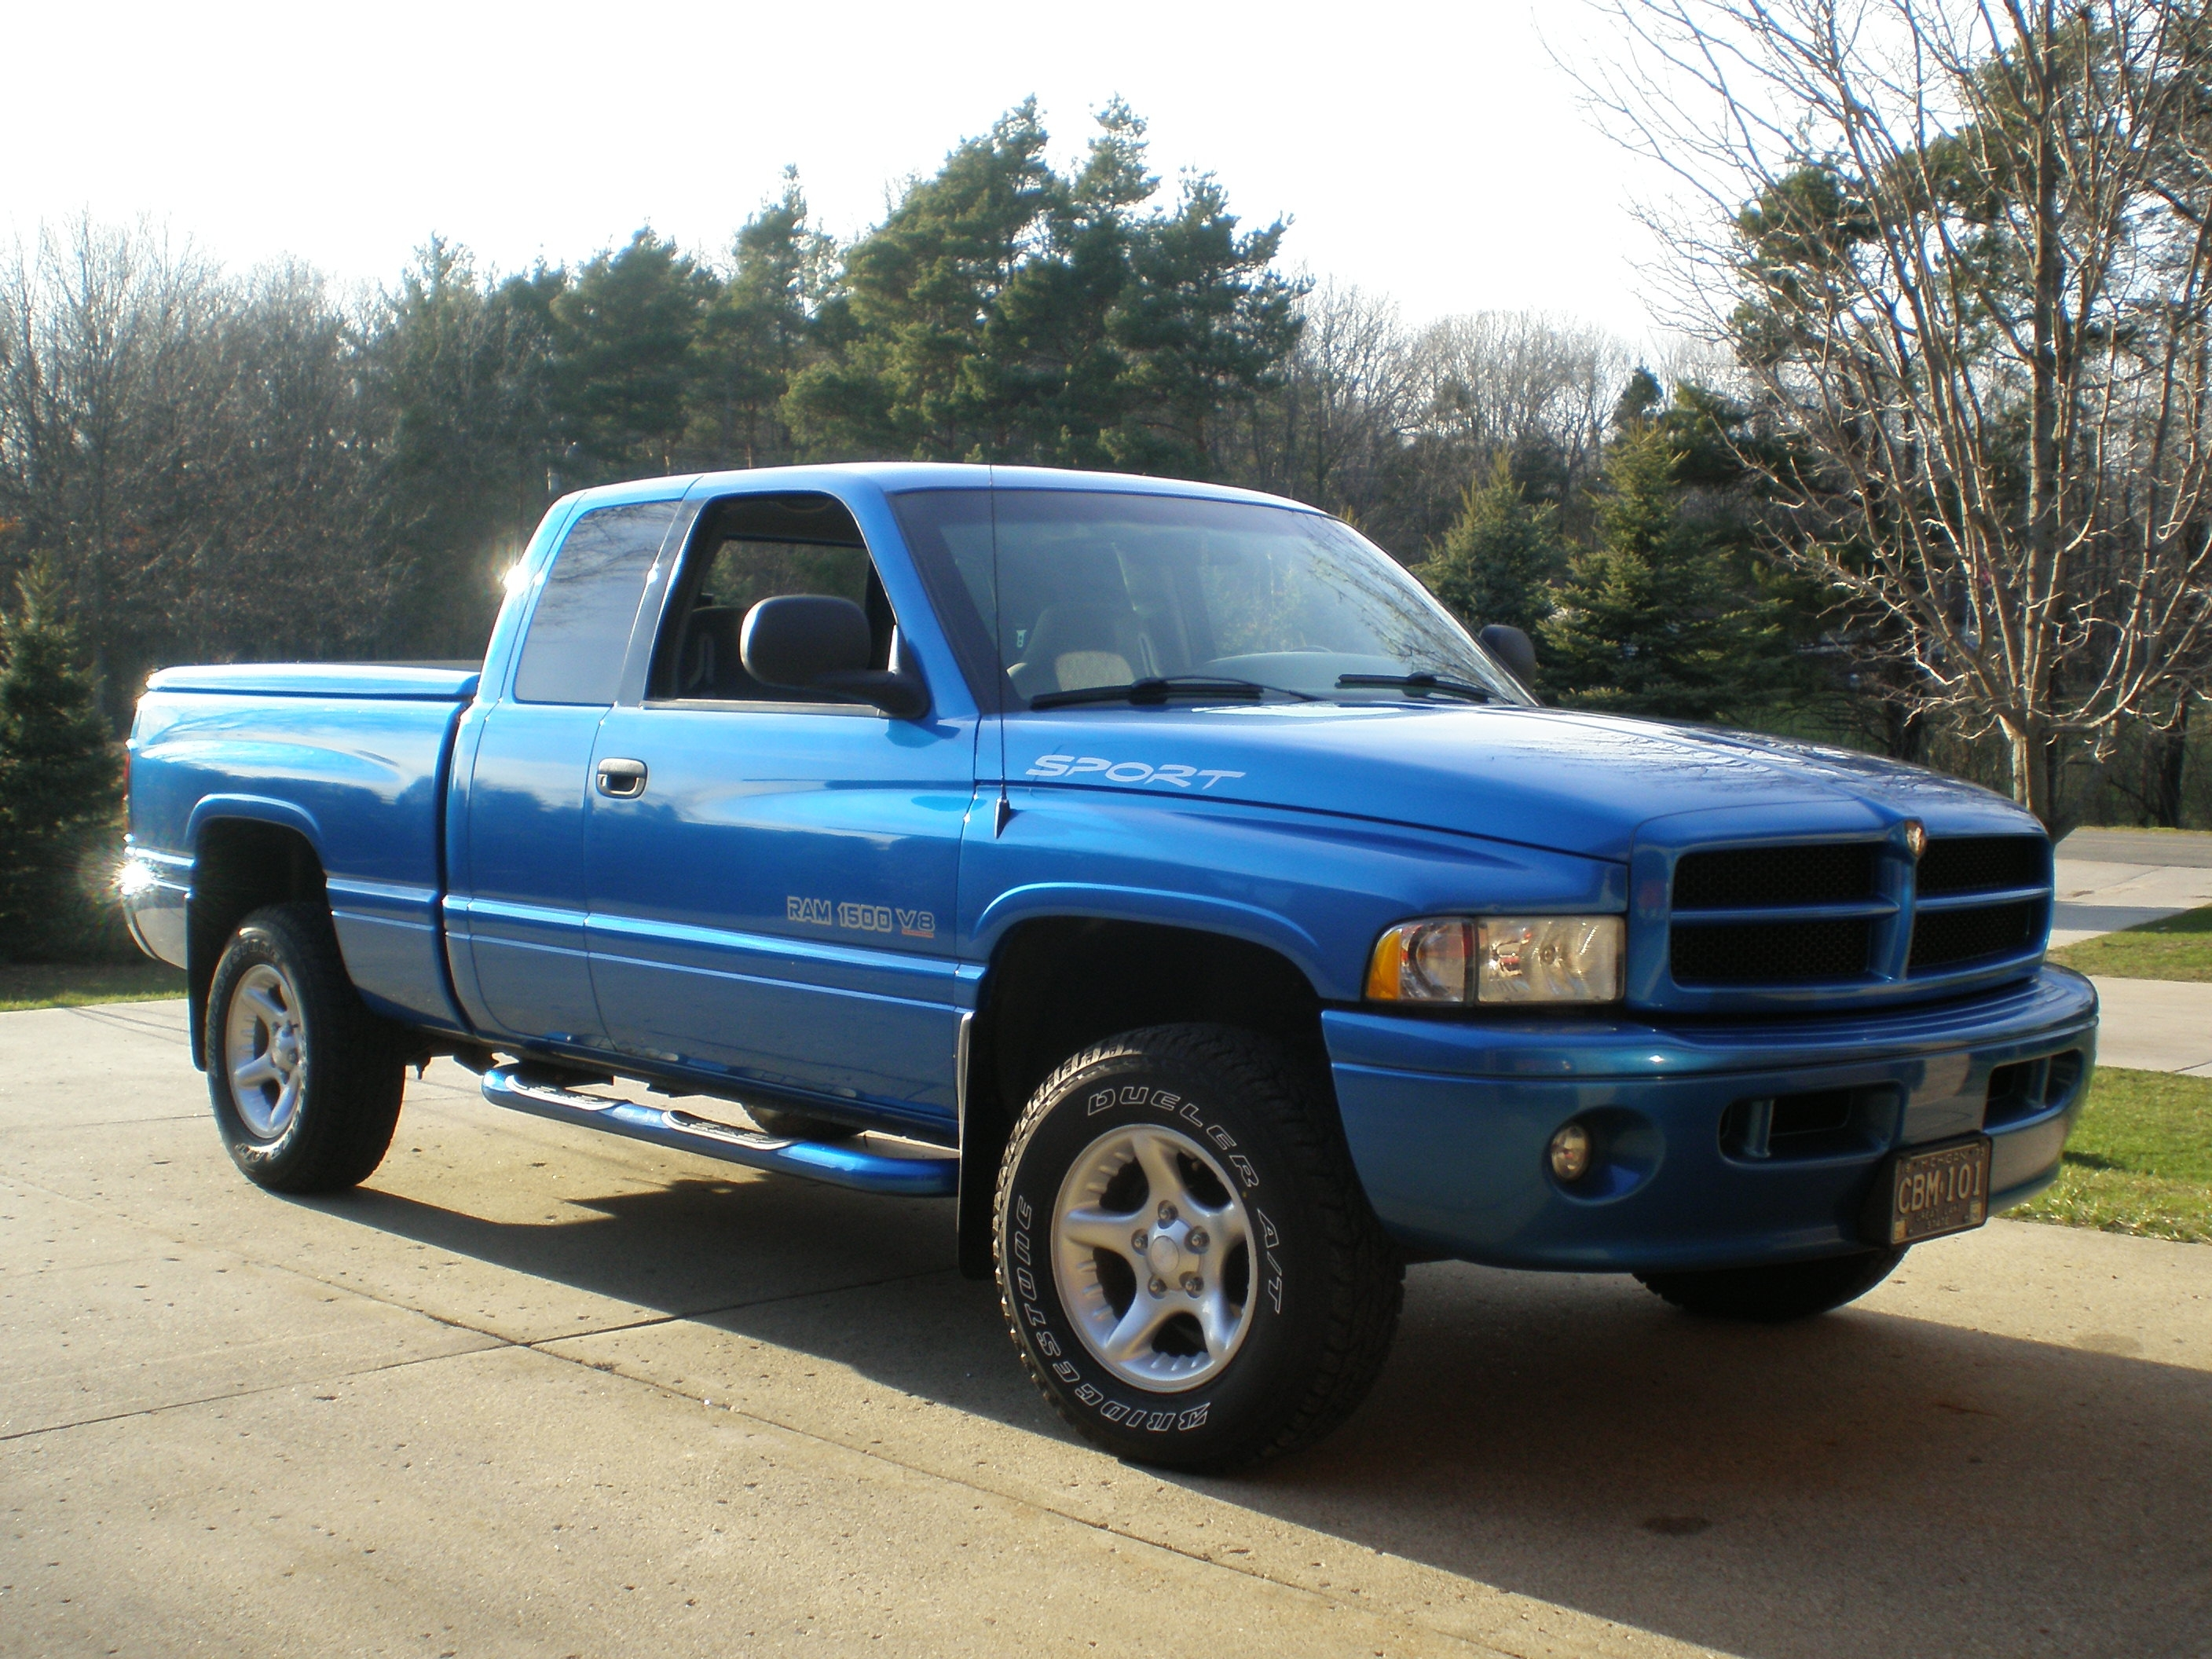 Original on 2000 Dodge Dakota Sport For Sale